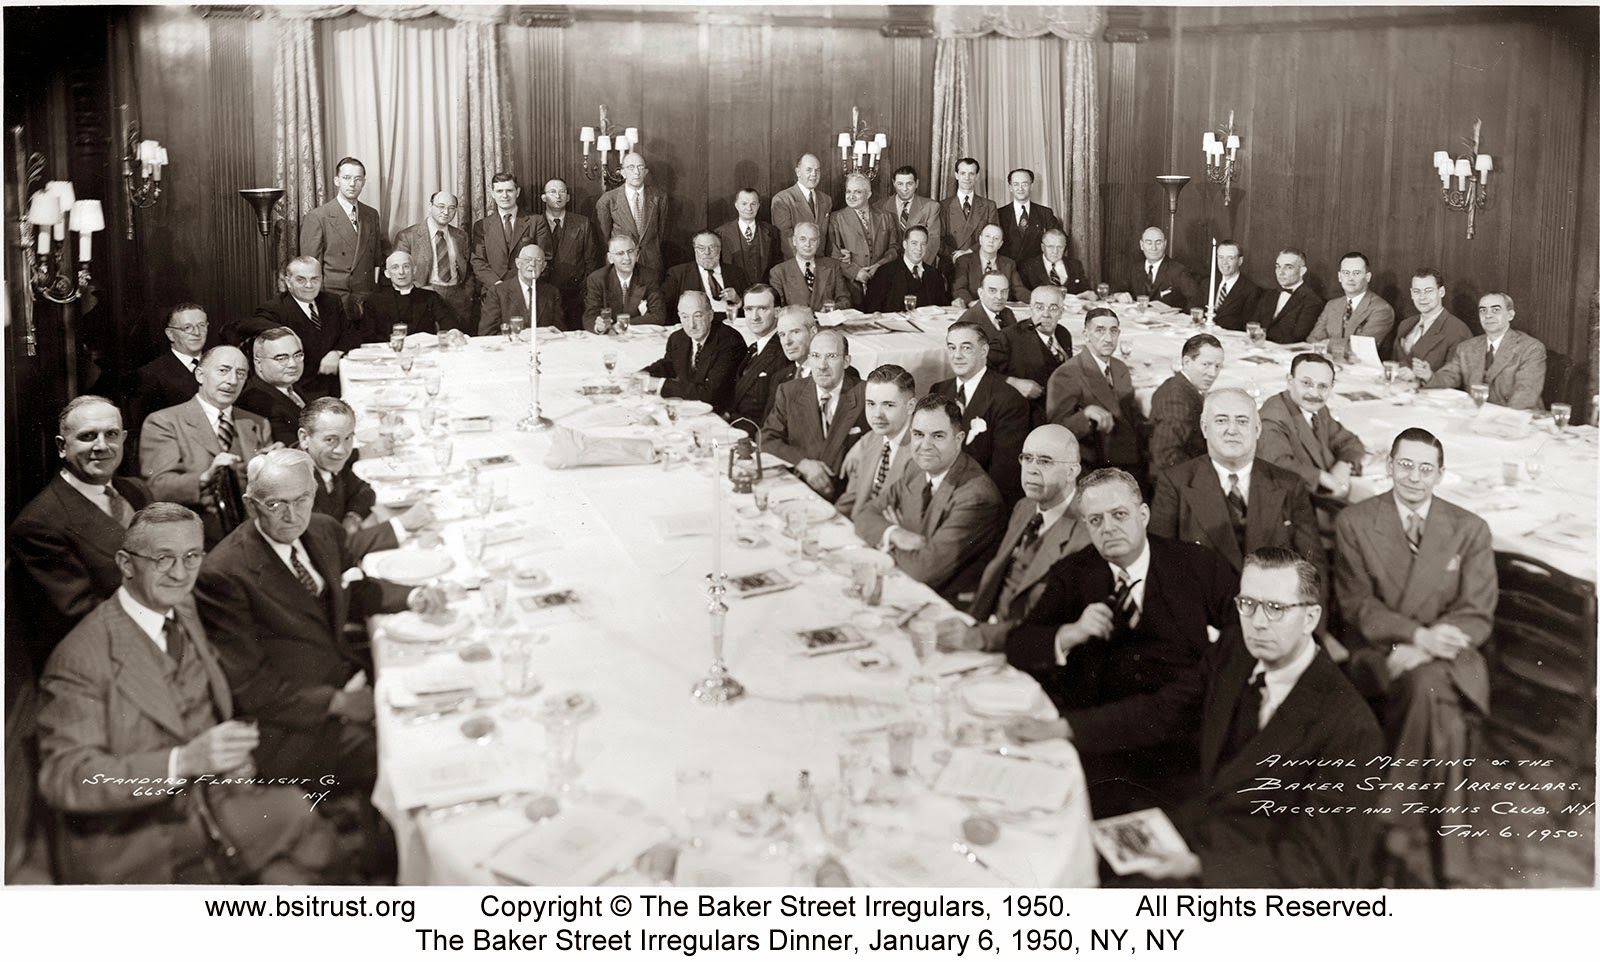 The 1950 BSI Dinner group photo